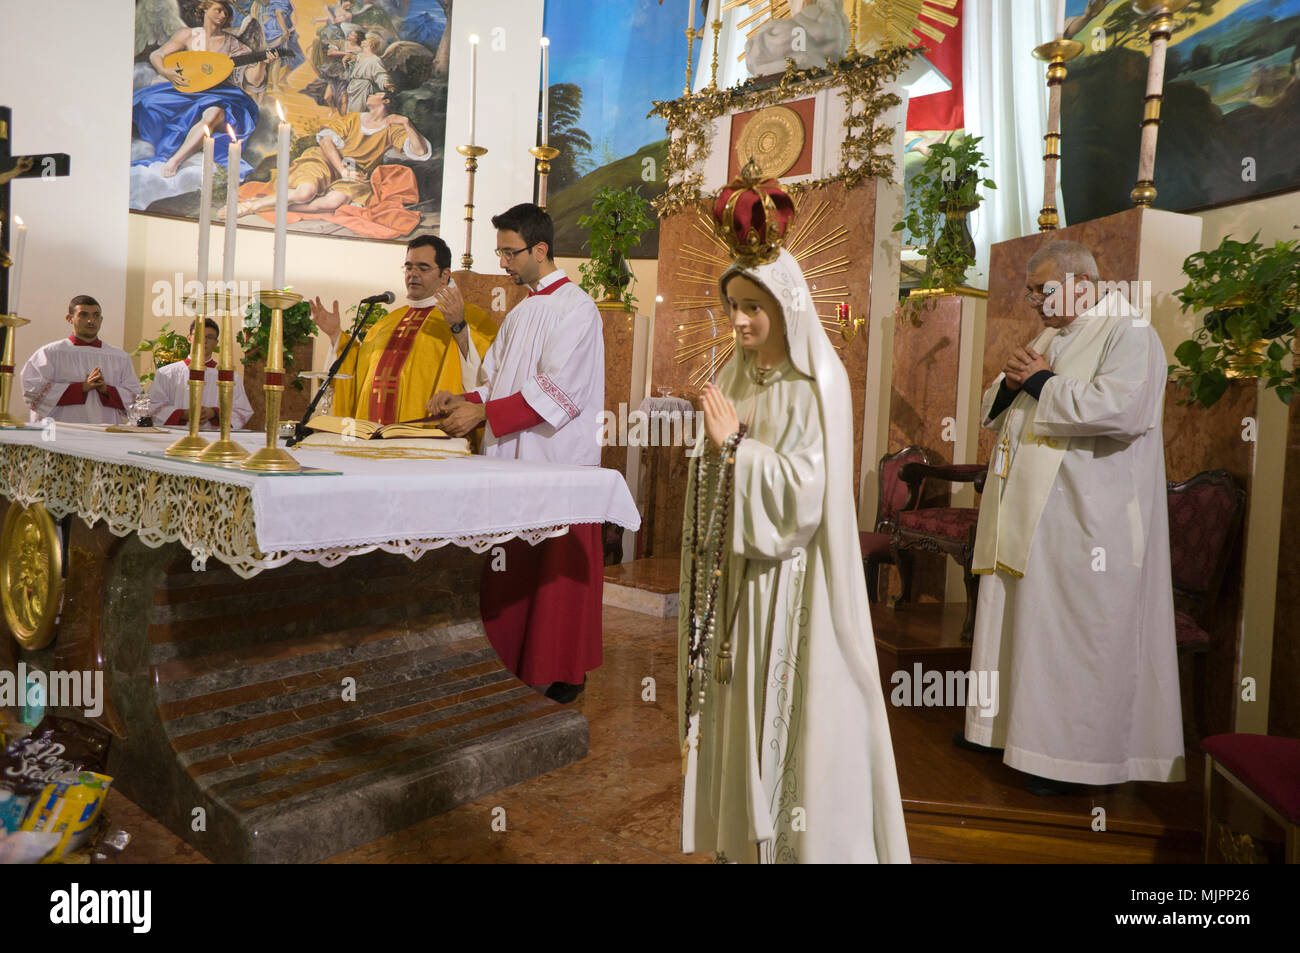 Canapé Italien St Priest Priest Celebrating Catholic Mass Stock Photos And Priest